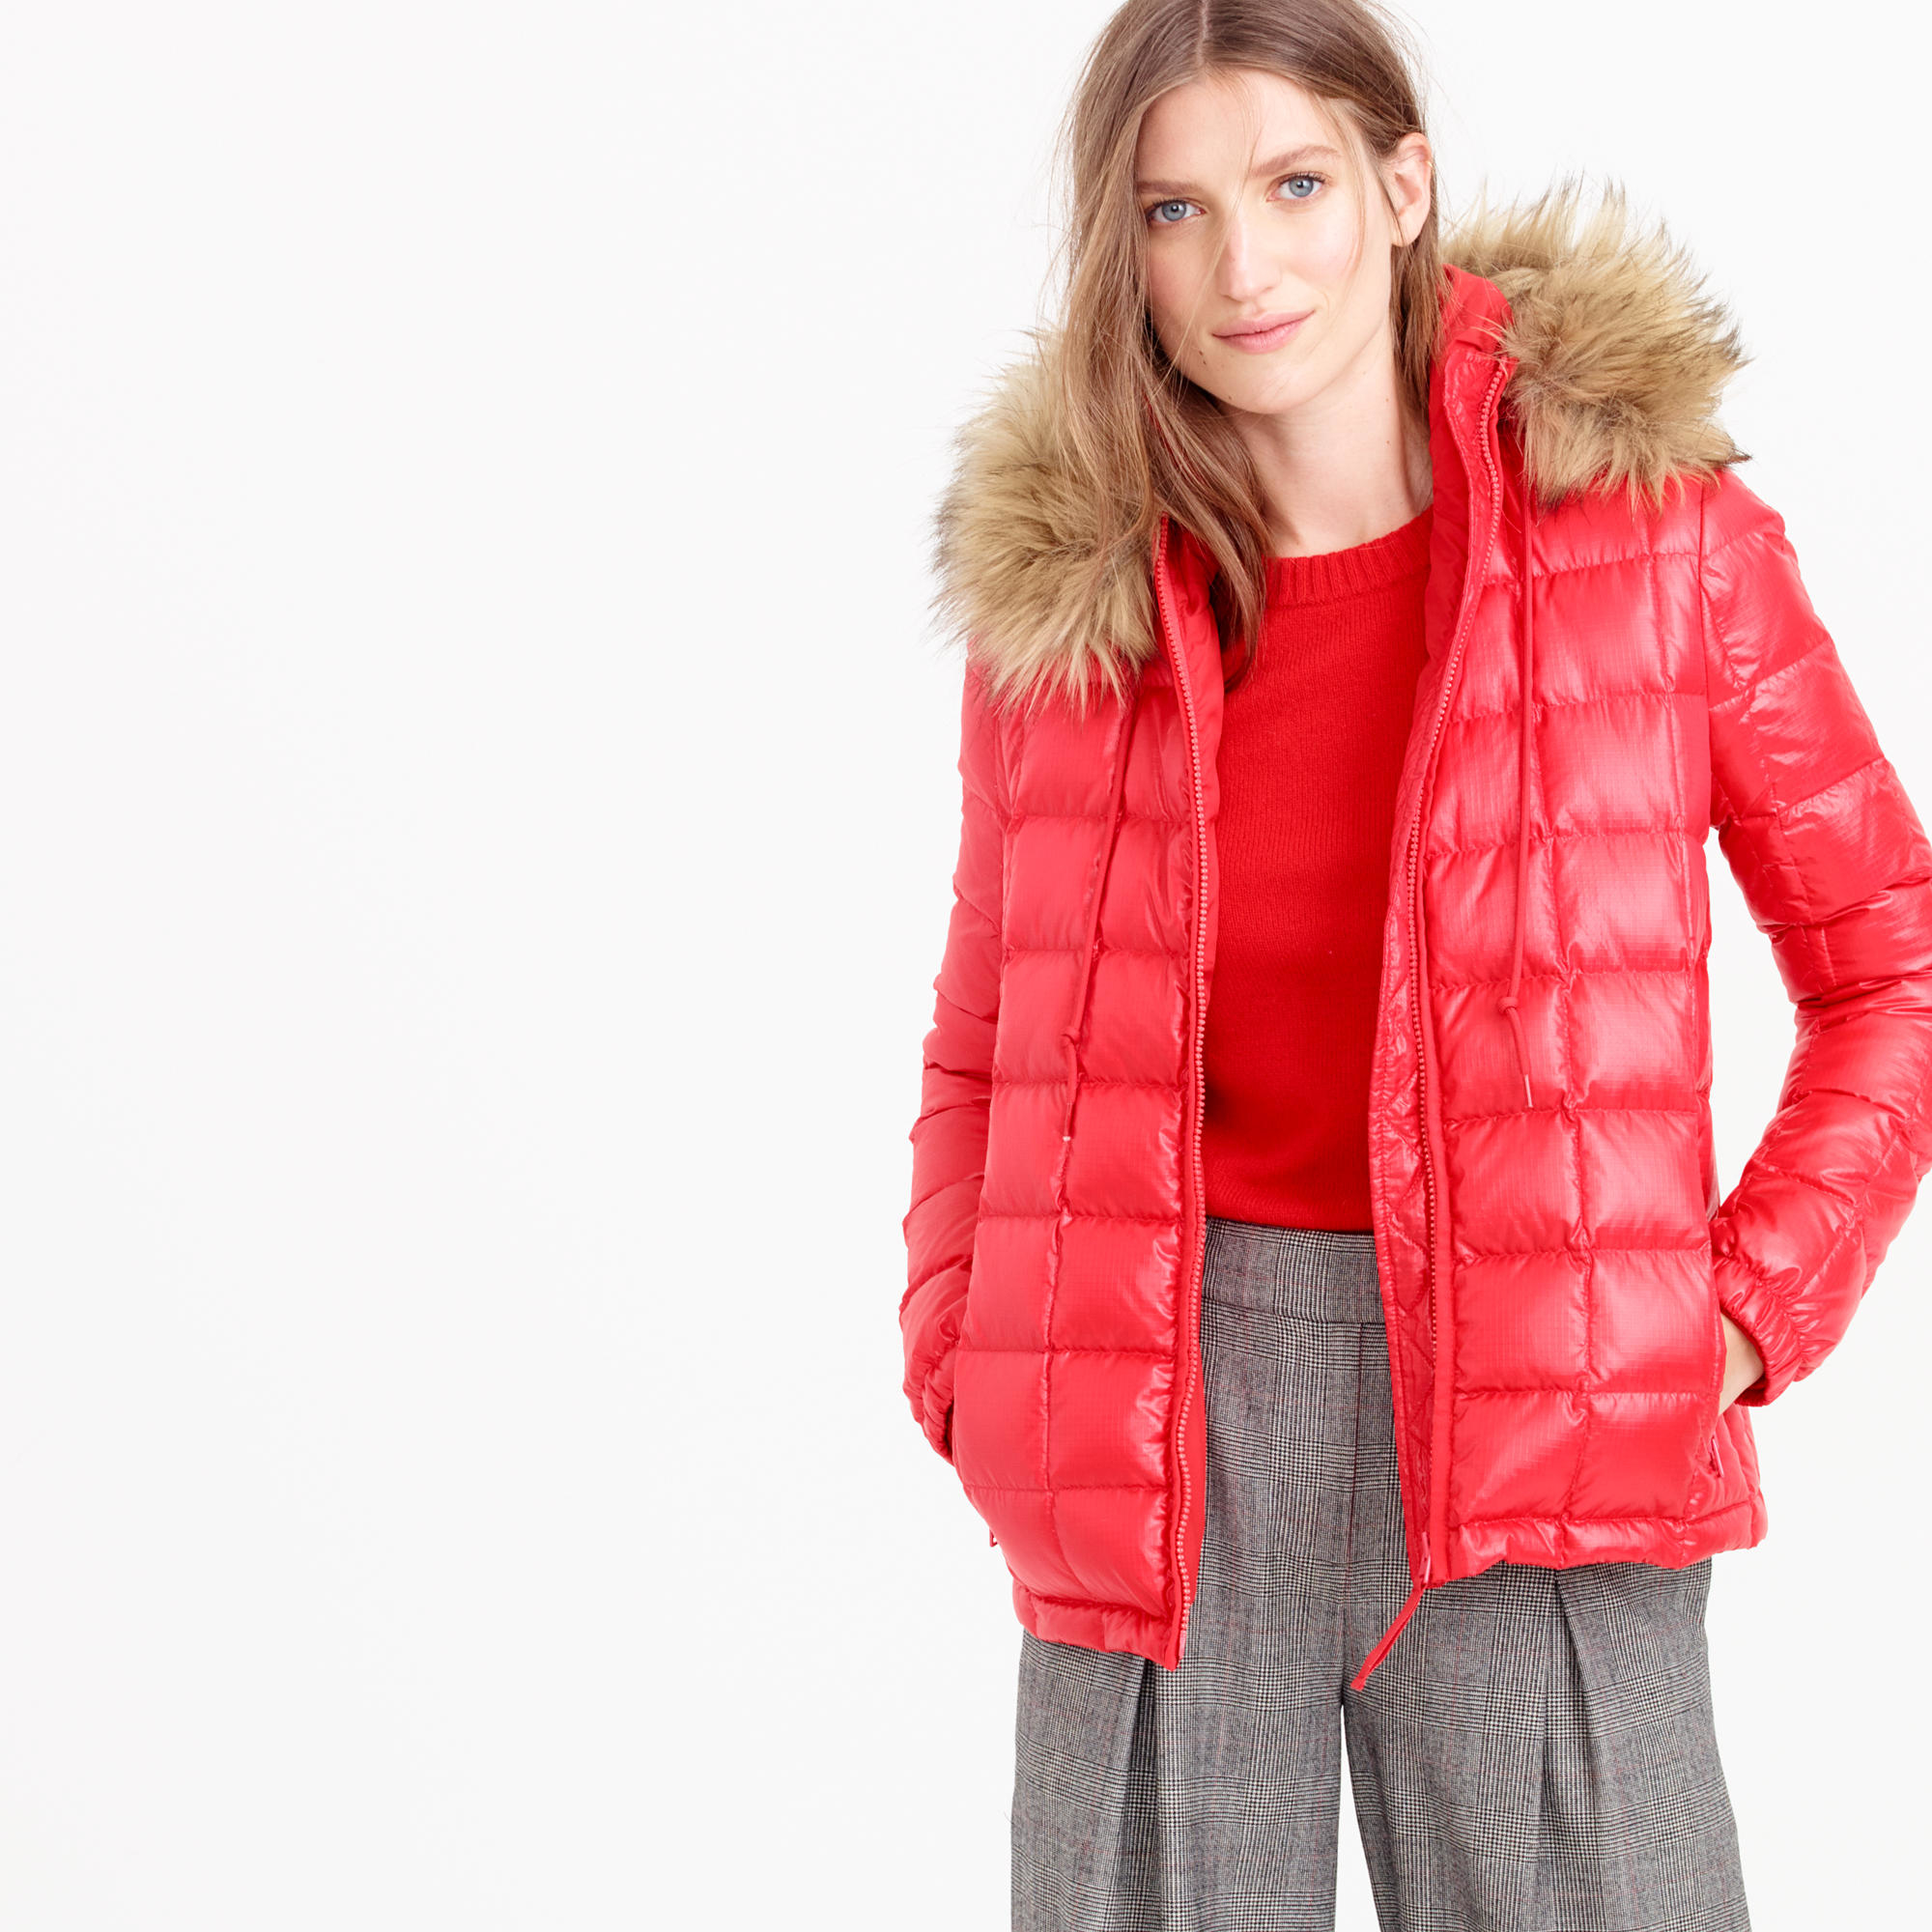 J Crew Short Quilted Puffer Jacket With Faux Fur Hood In